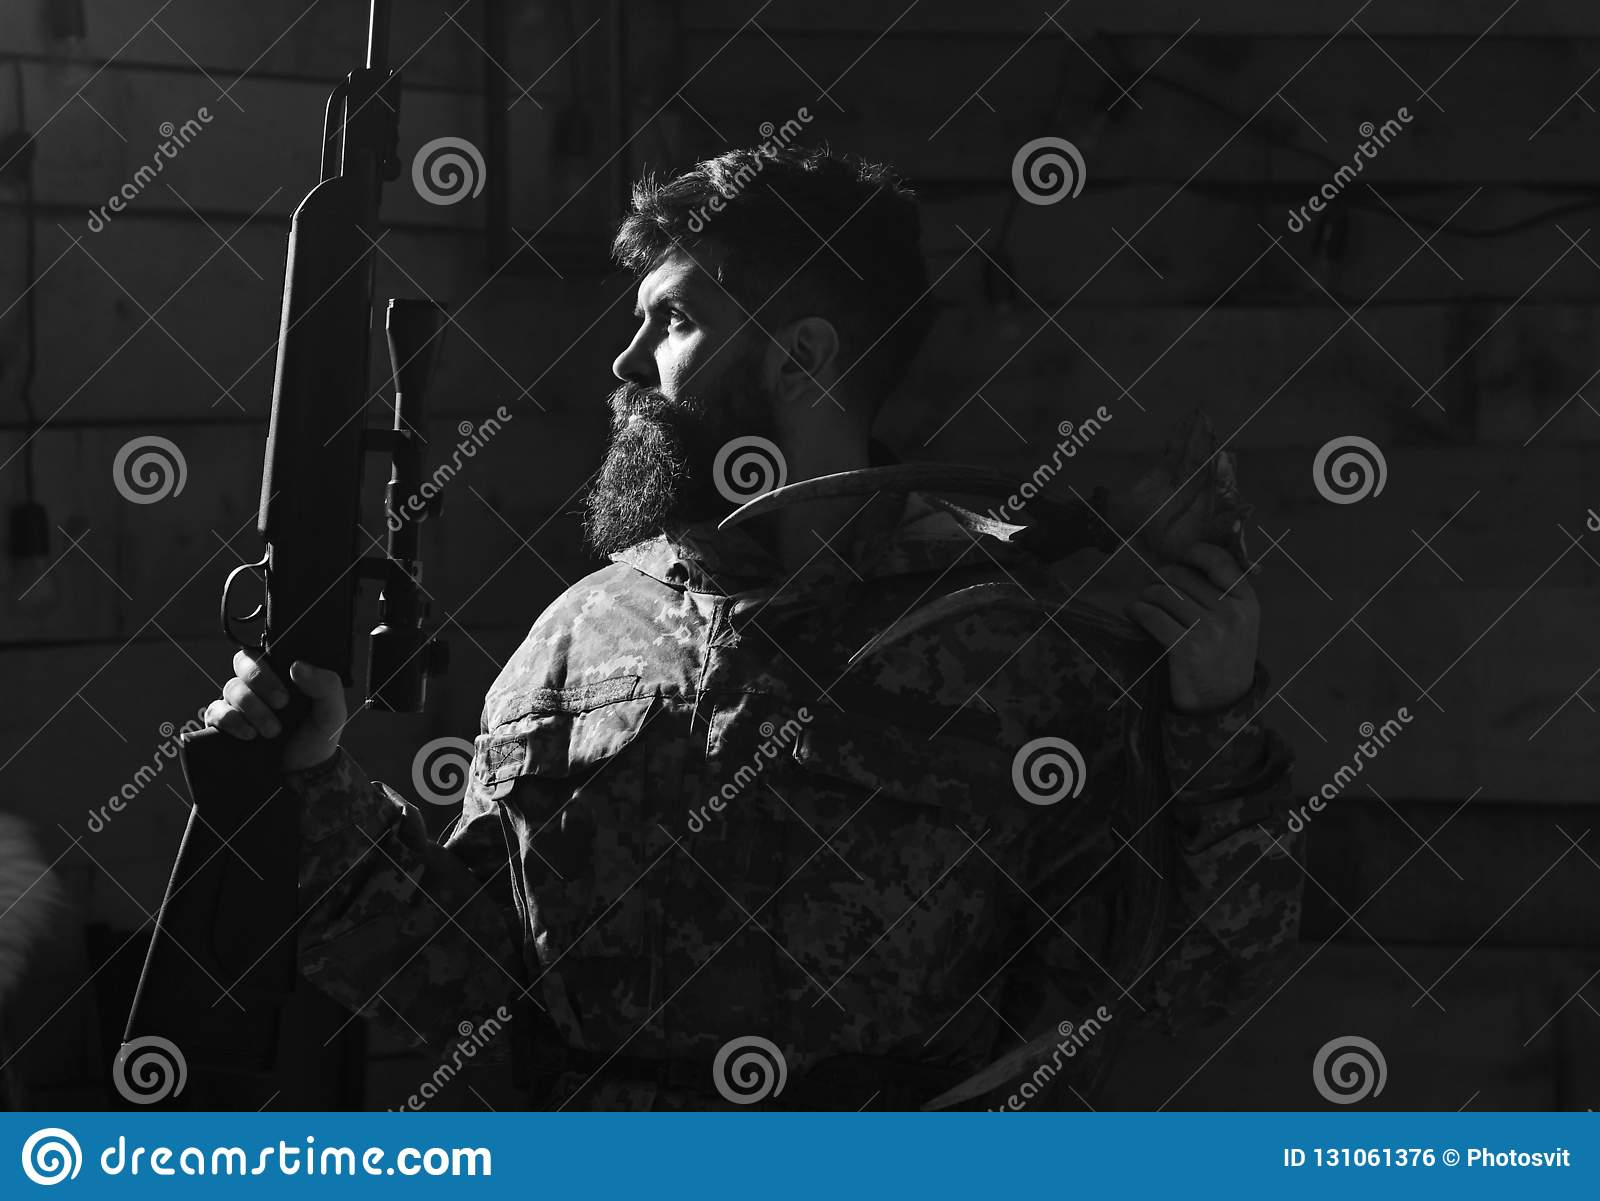 Hunter concept. Portrait of bearded modern hunter with his trophy holds rifle. Man with beard wears camouflage clothing